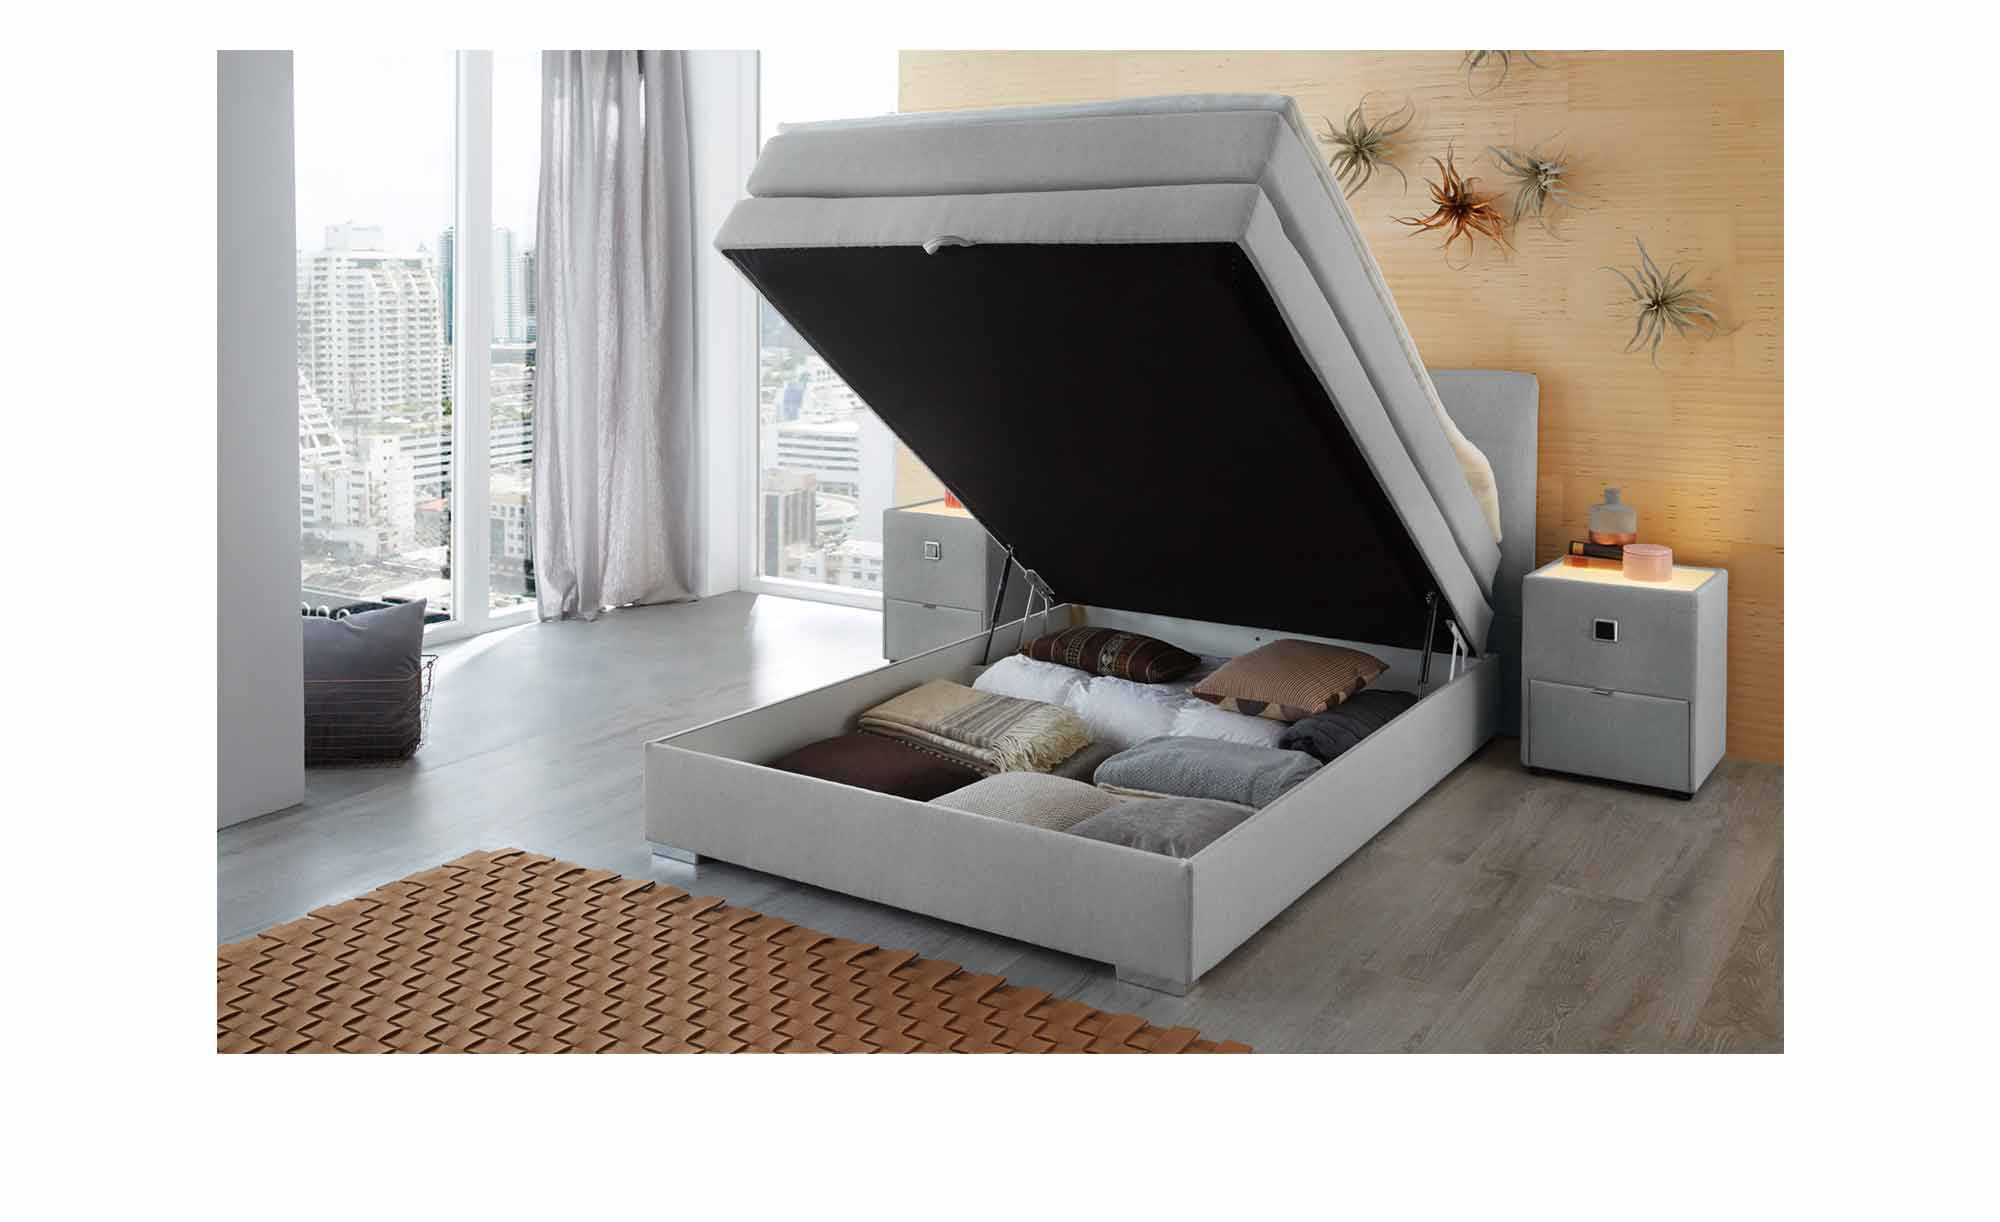 boxspringbett antonia bei m bel heinrich online entdecken. Black Bedroom Furniture Sets. Home Design Ideas